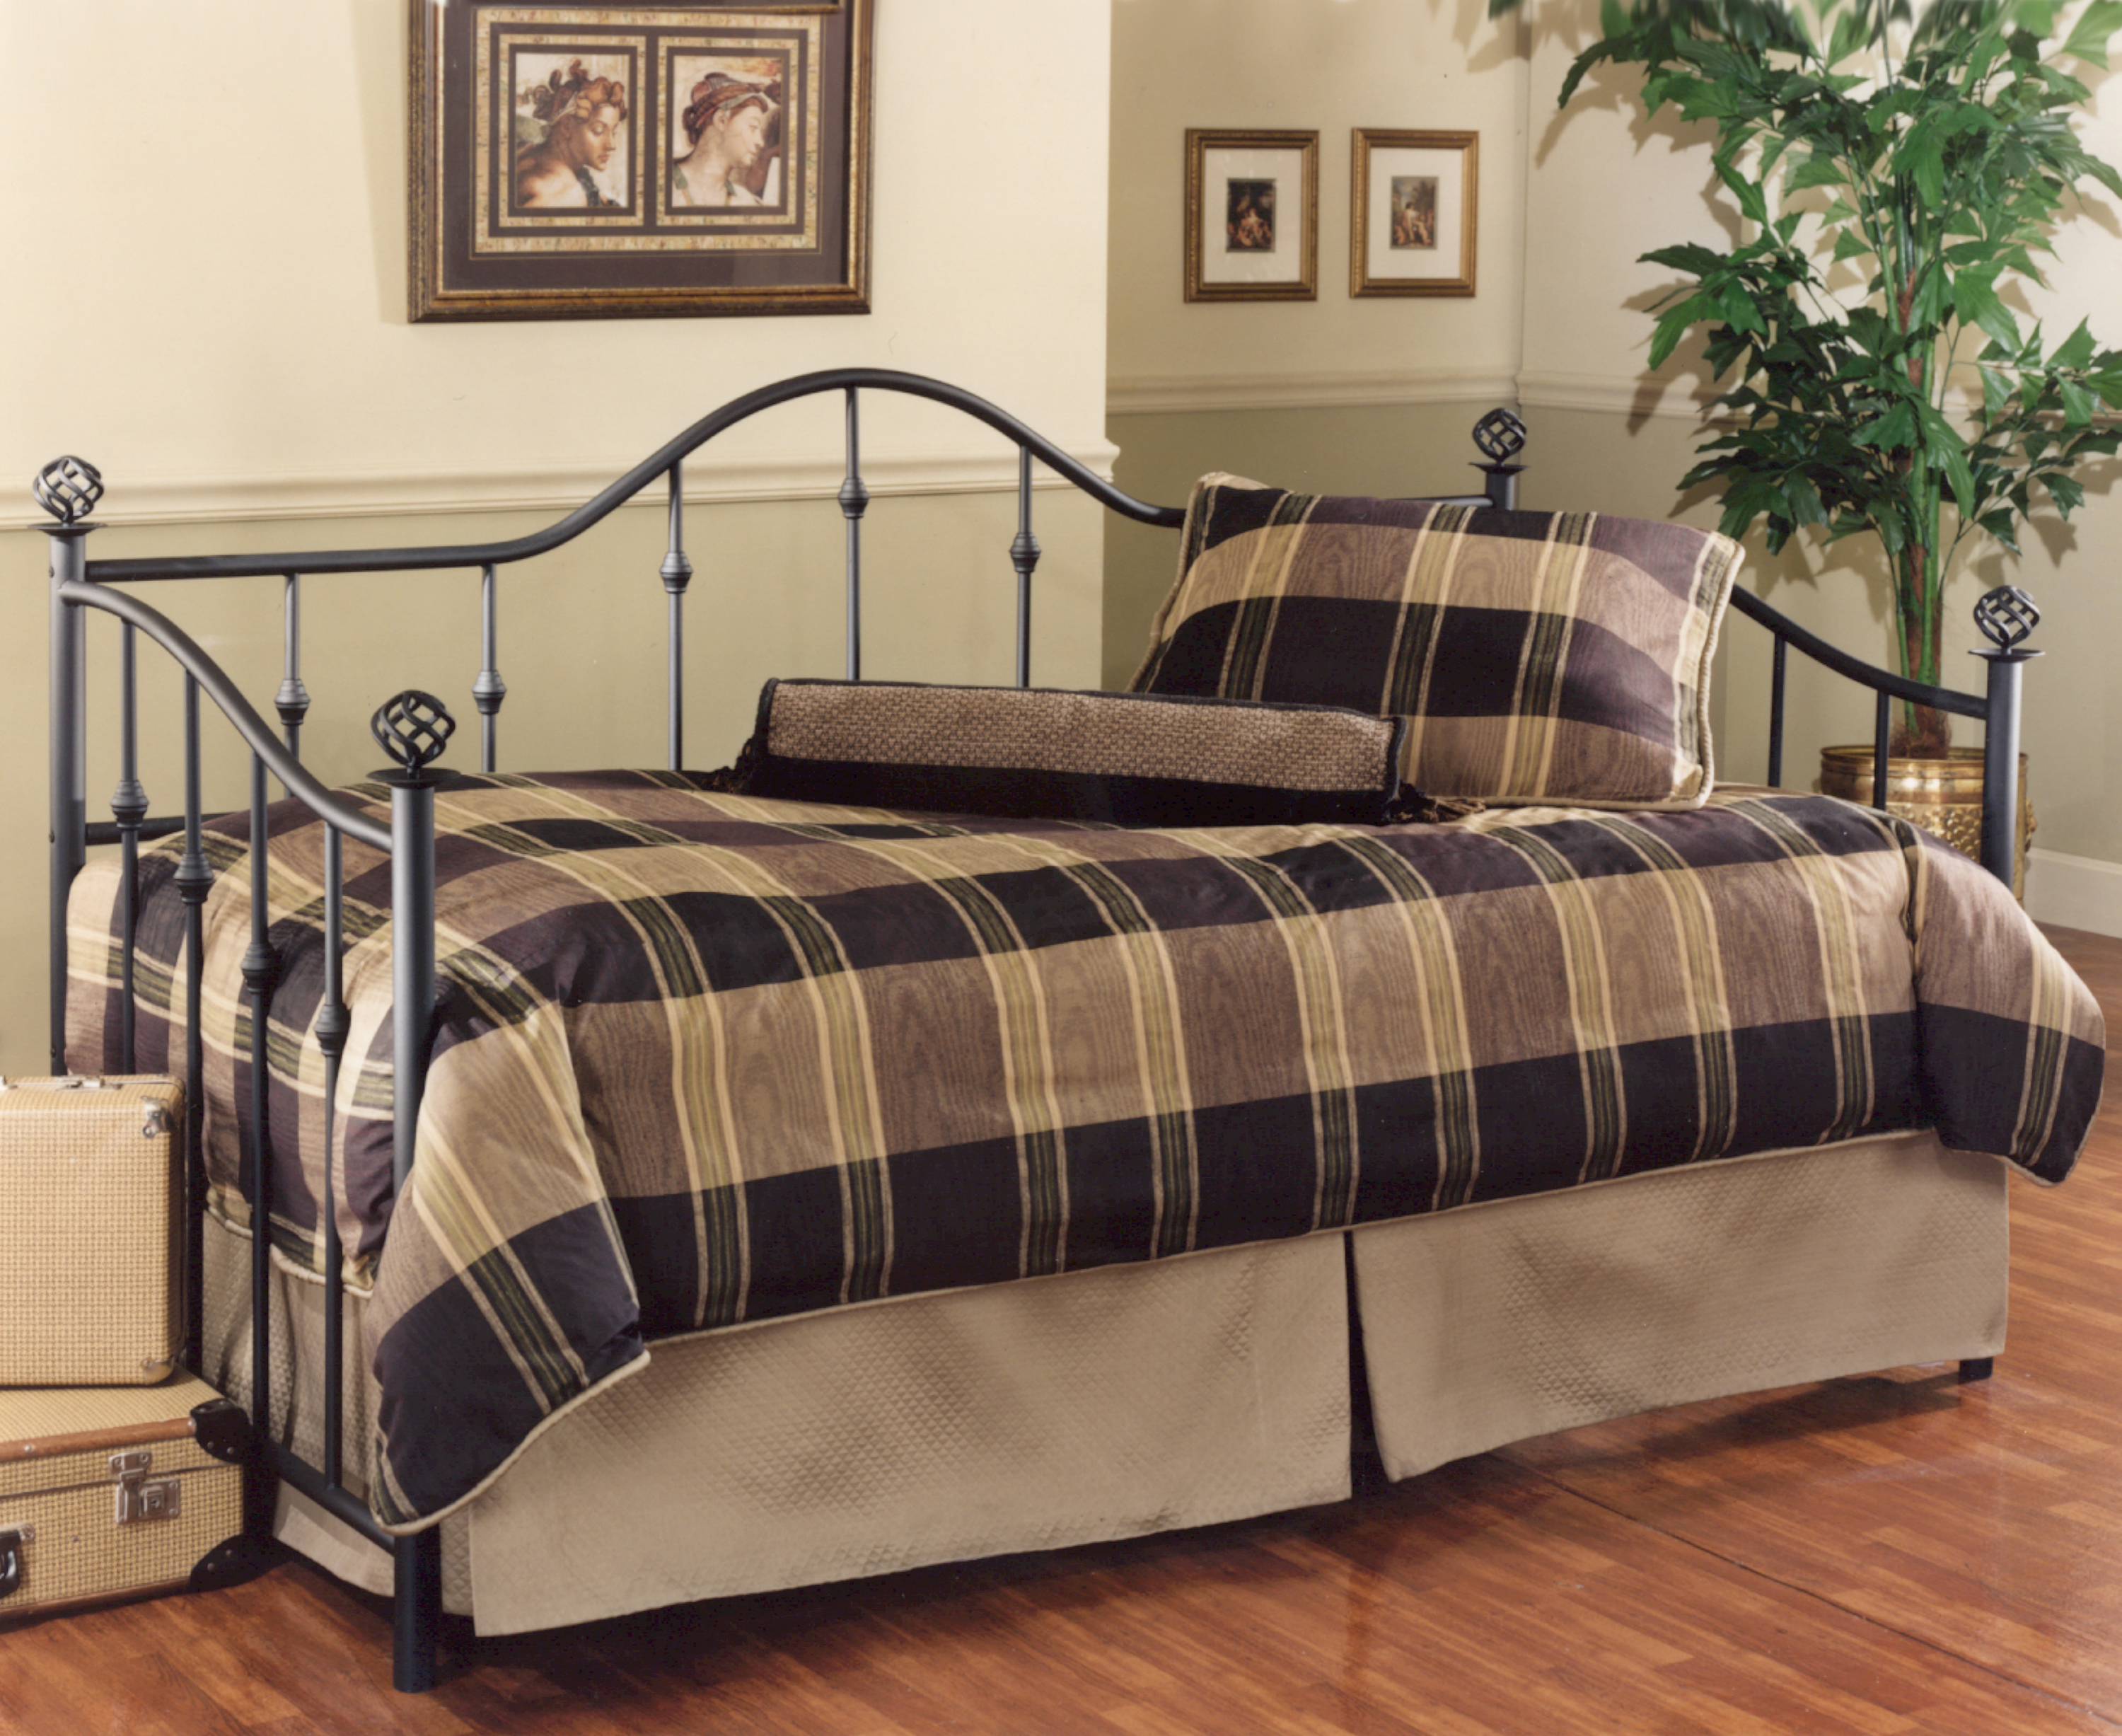 Hillsdale Daybeds Daybed w/Suspension Deck and Trundle - Item Number: 11177DBLHTR